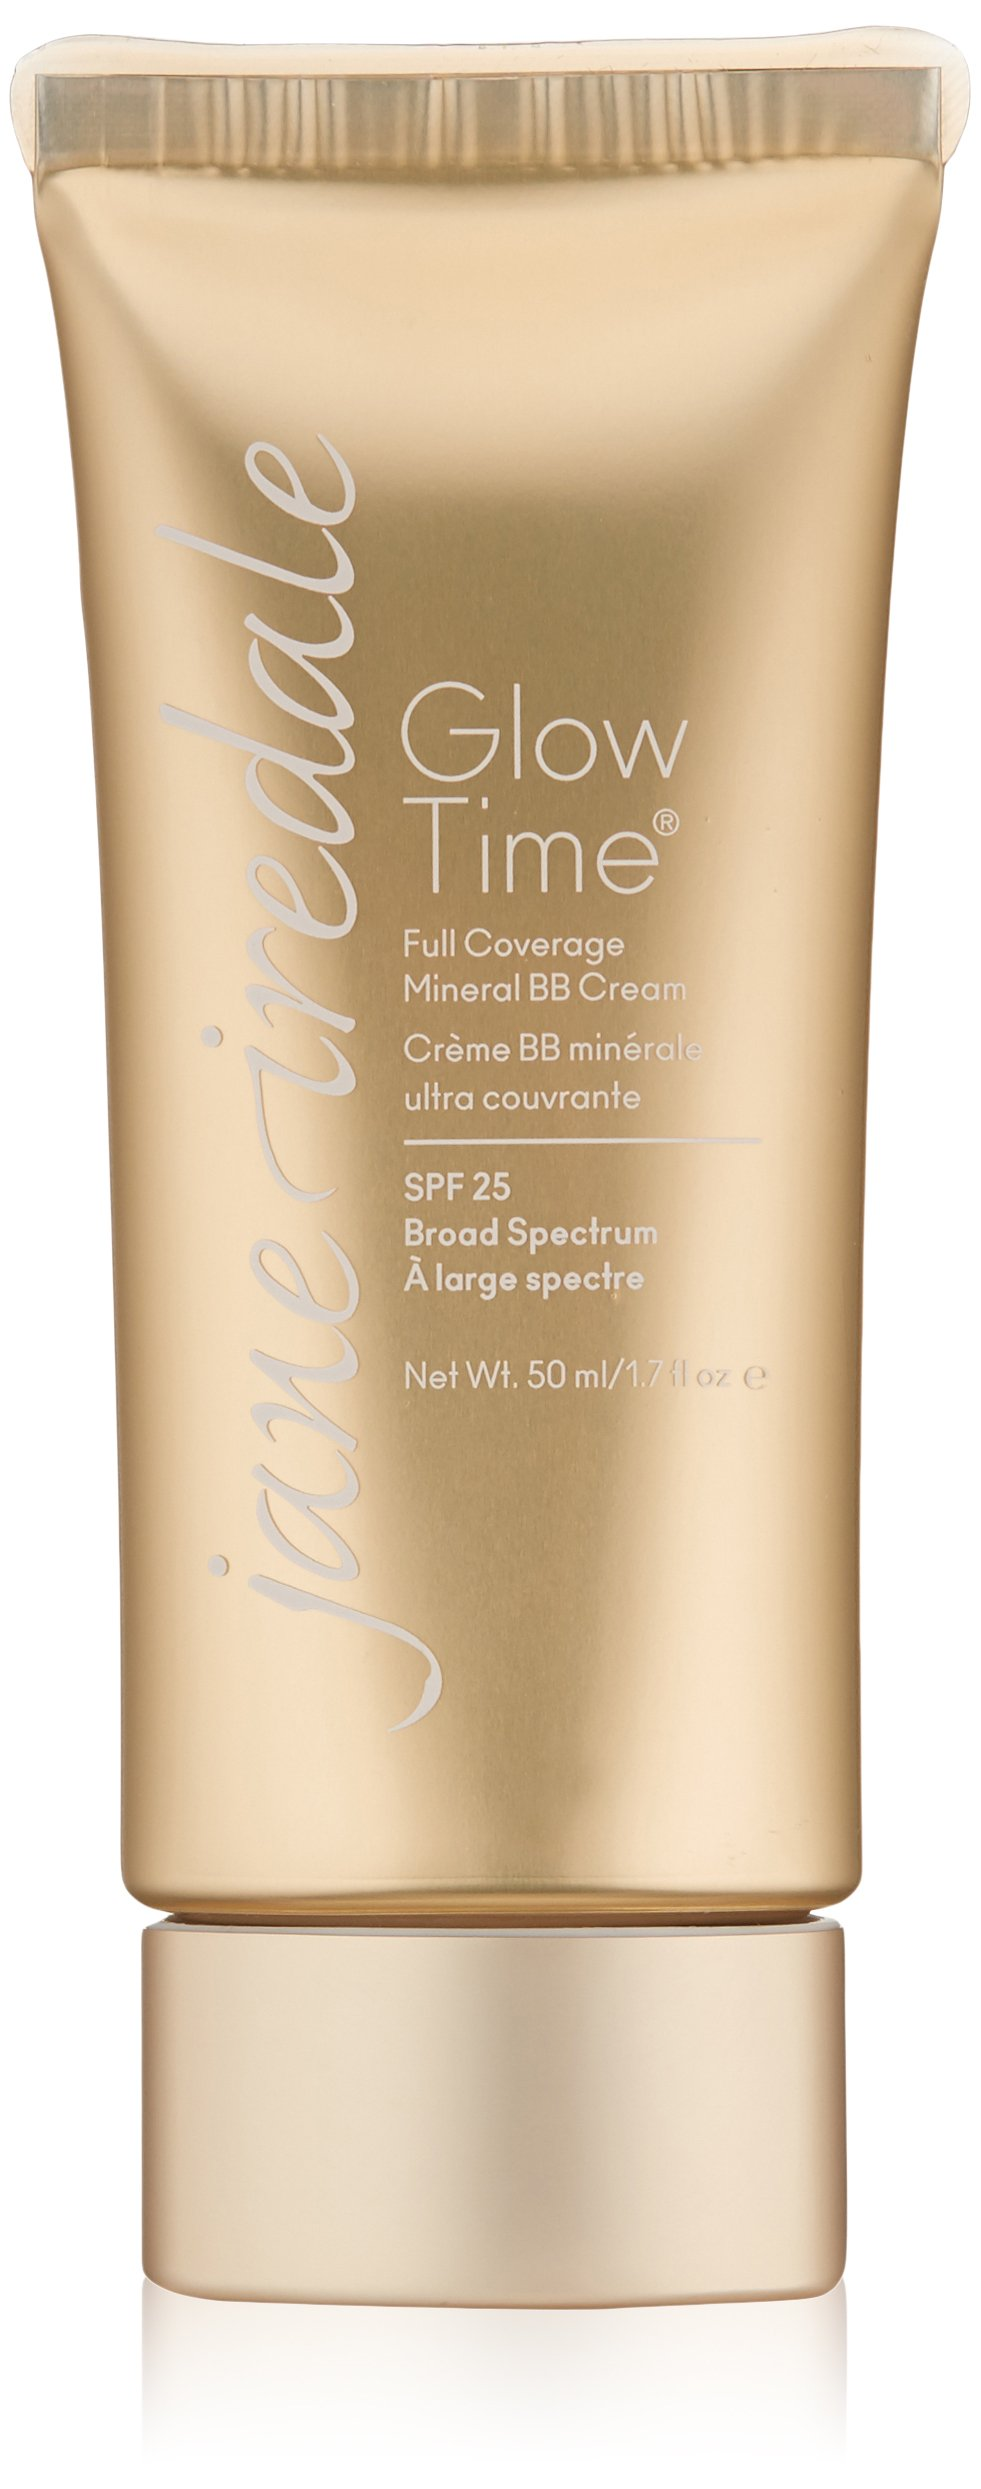 jane iredale Glow Time Full Coverage Mineral BB Cream, BB7, 1.7 fl. oz.